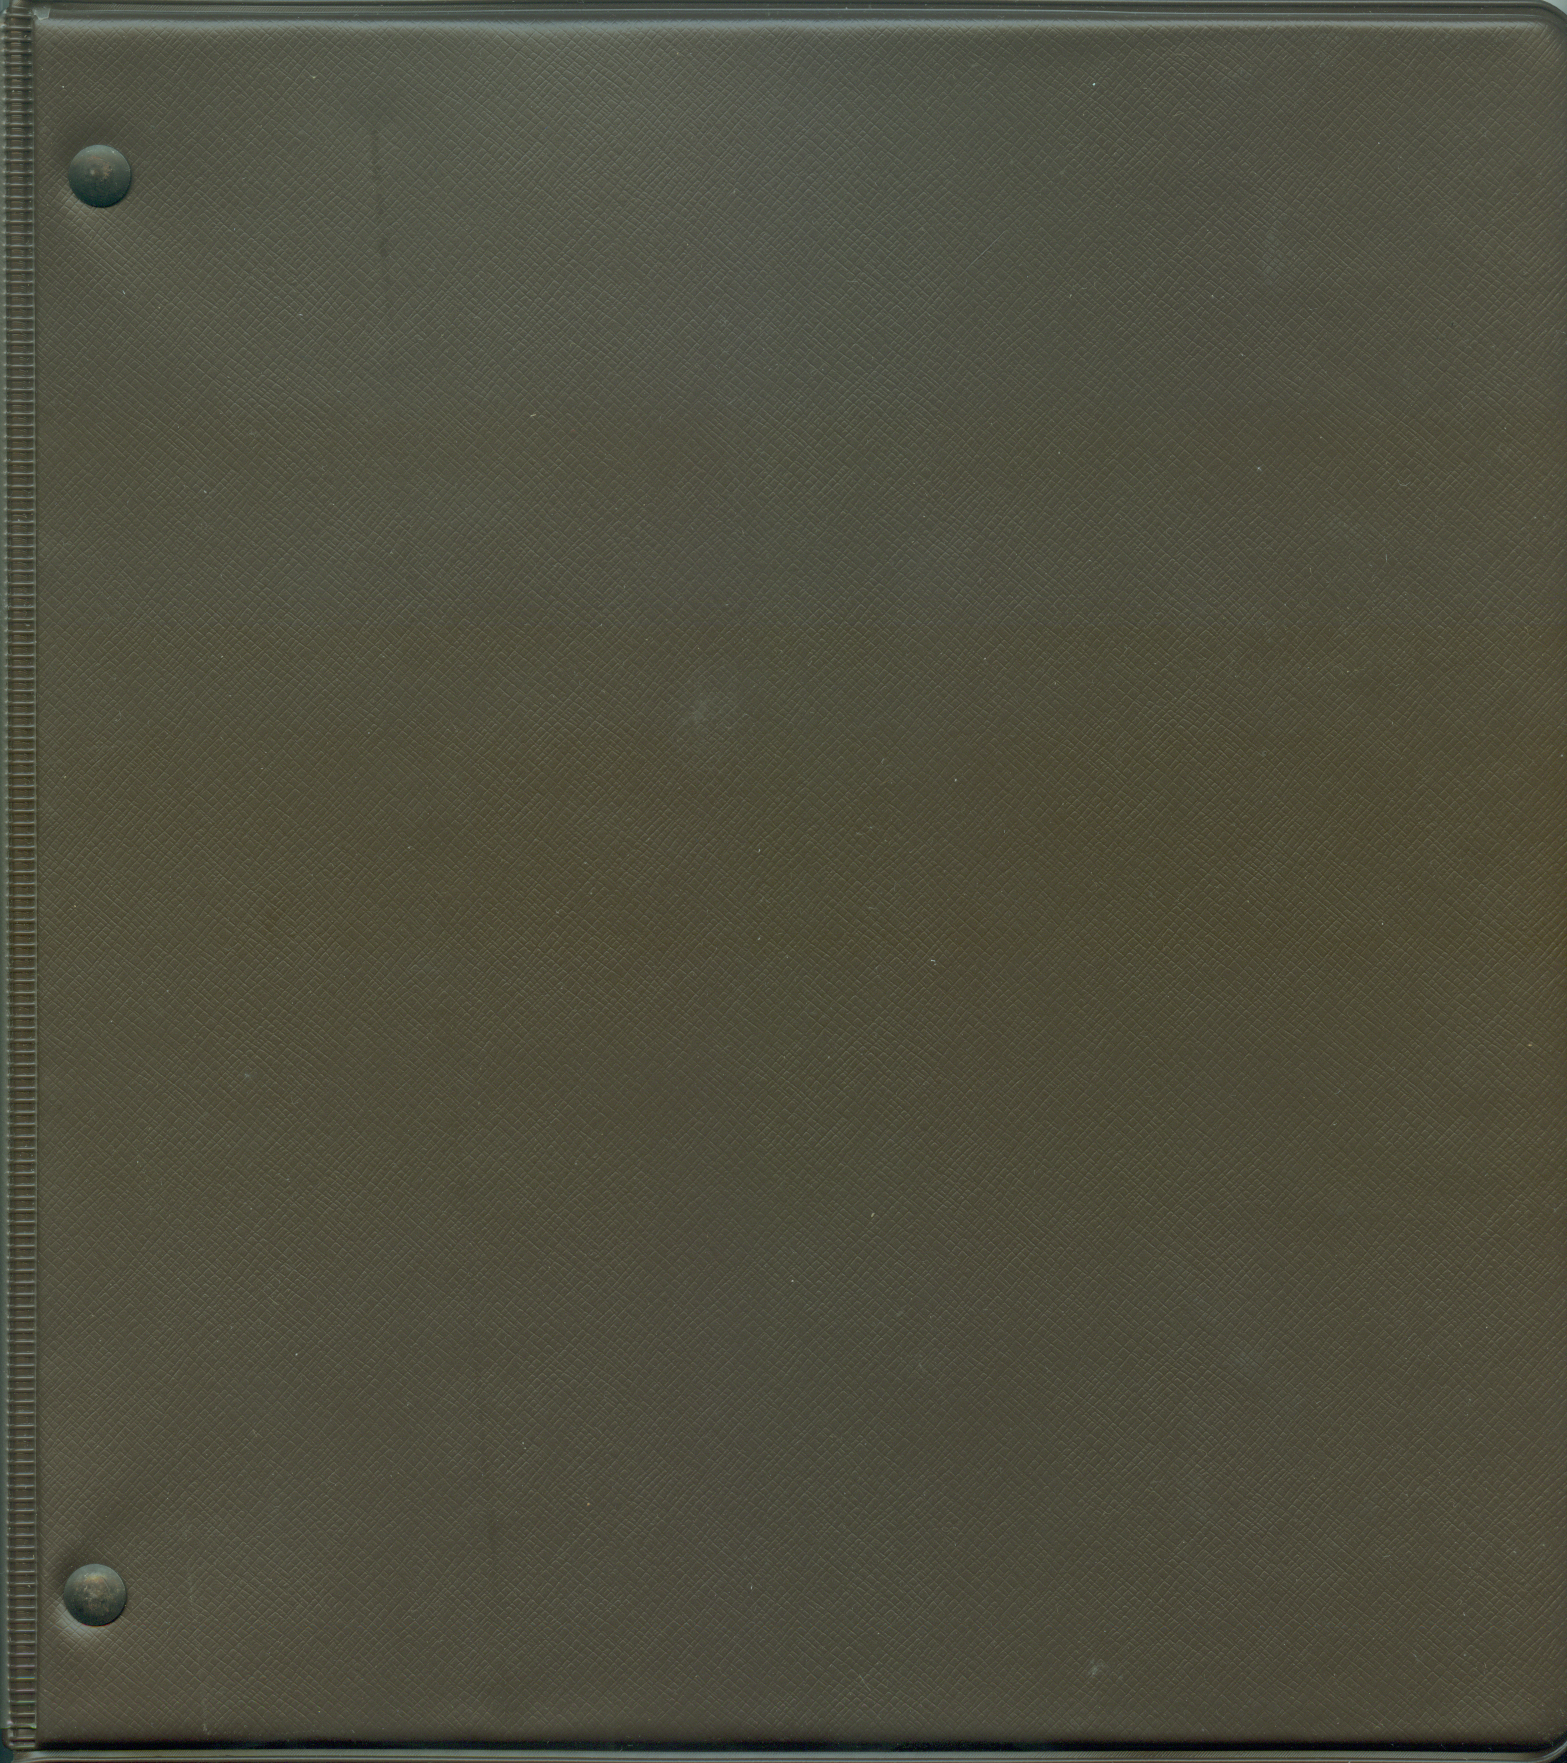 Retail Binder cover Computerware's General Ledger System.